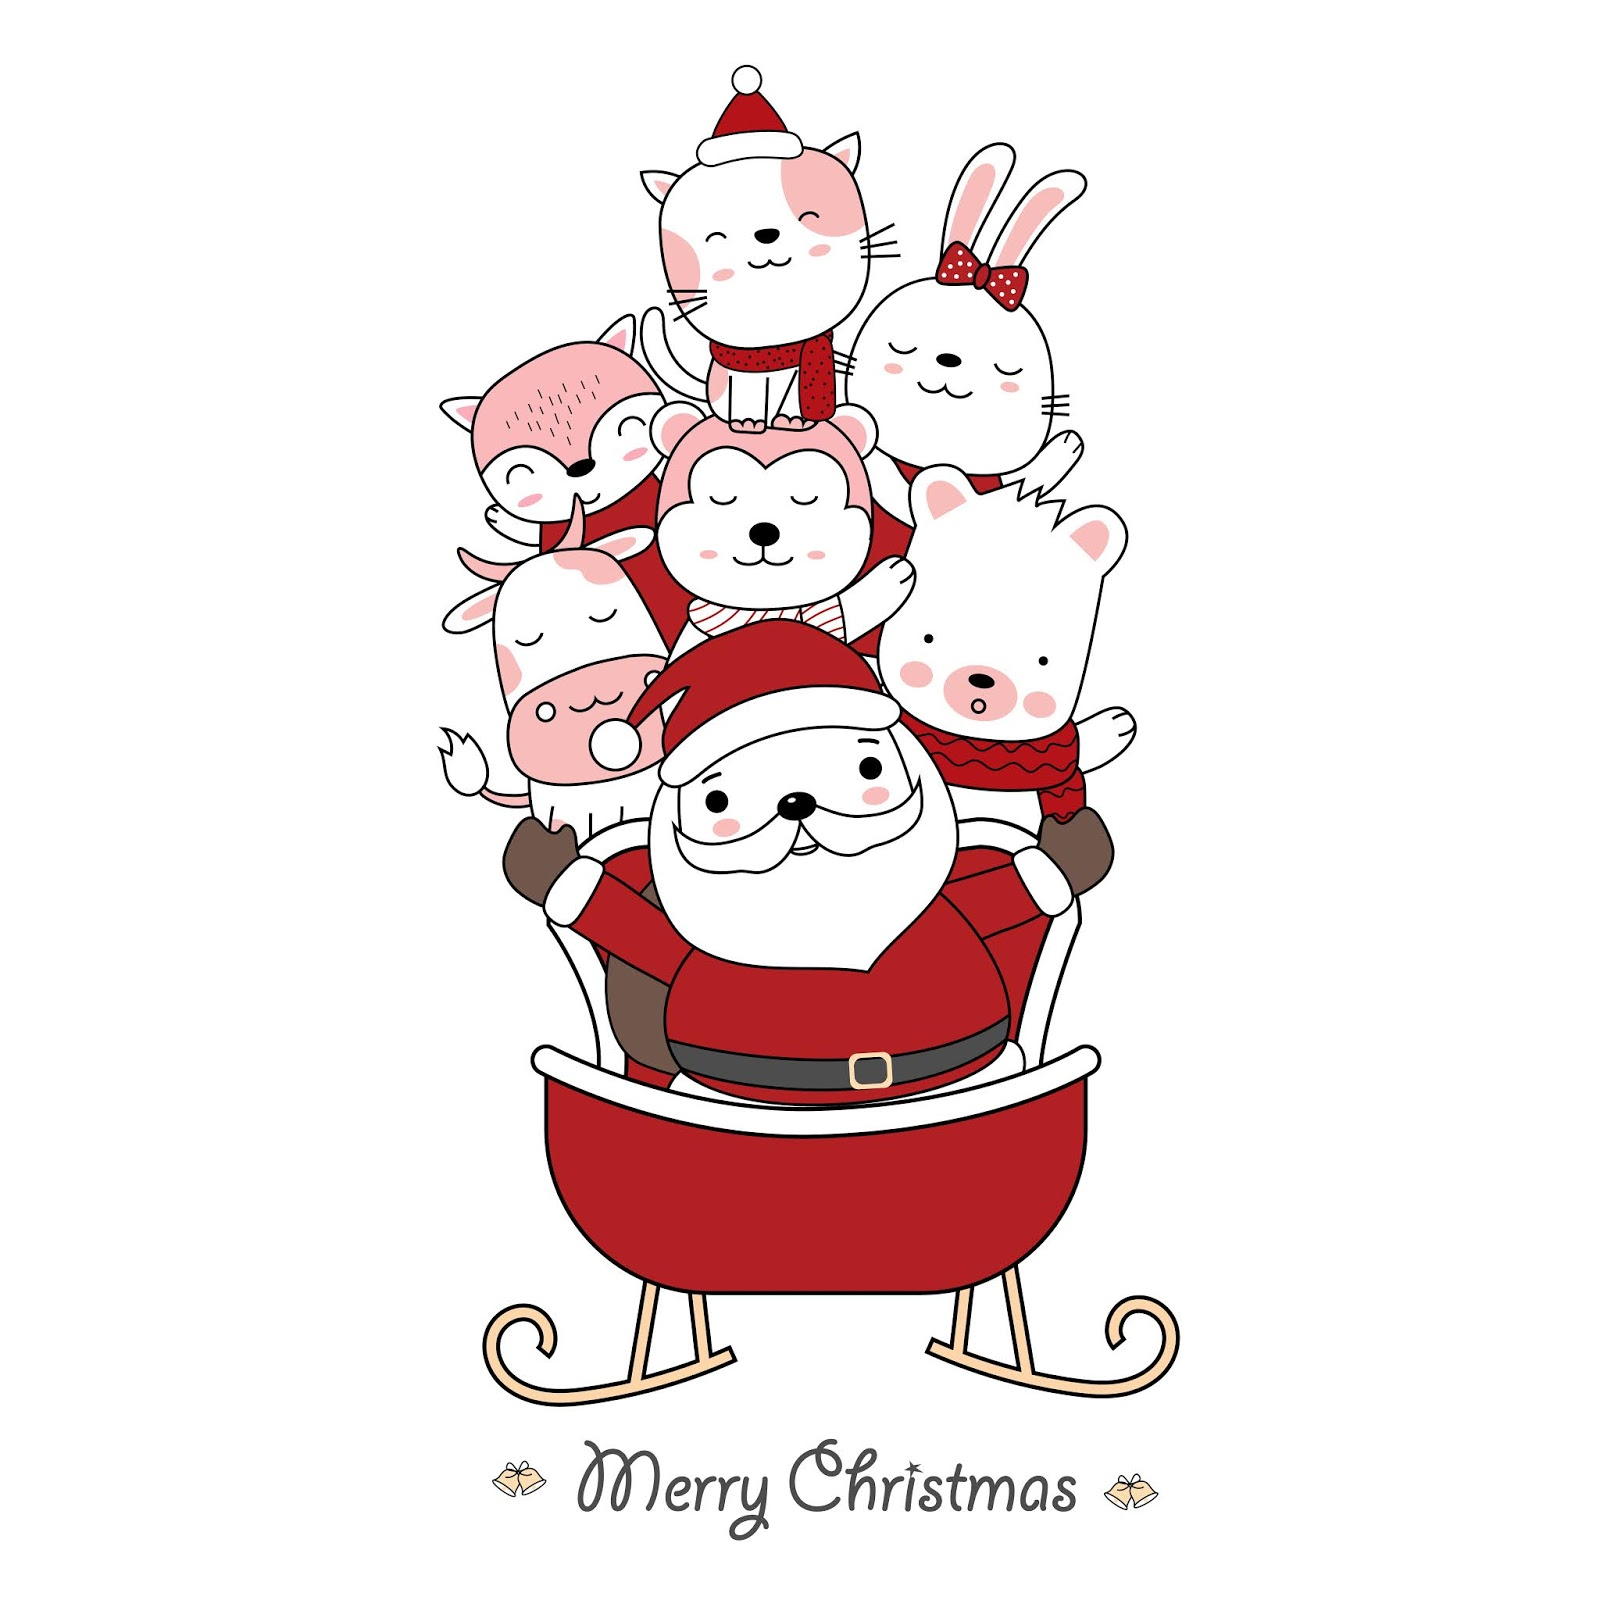 Christmas Greeting Card Design With Santa Claus Cute Baby Animal With Santa Car Hand Drawn Cartoon Style Vector Illustration Free Download Vector CDR, AI, EPS and PNG Formats